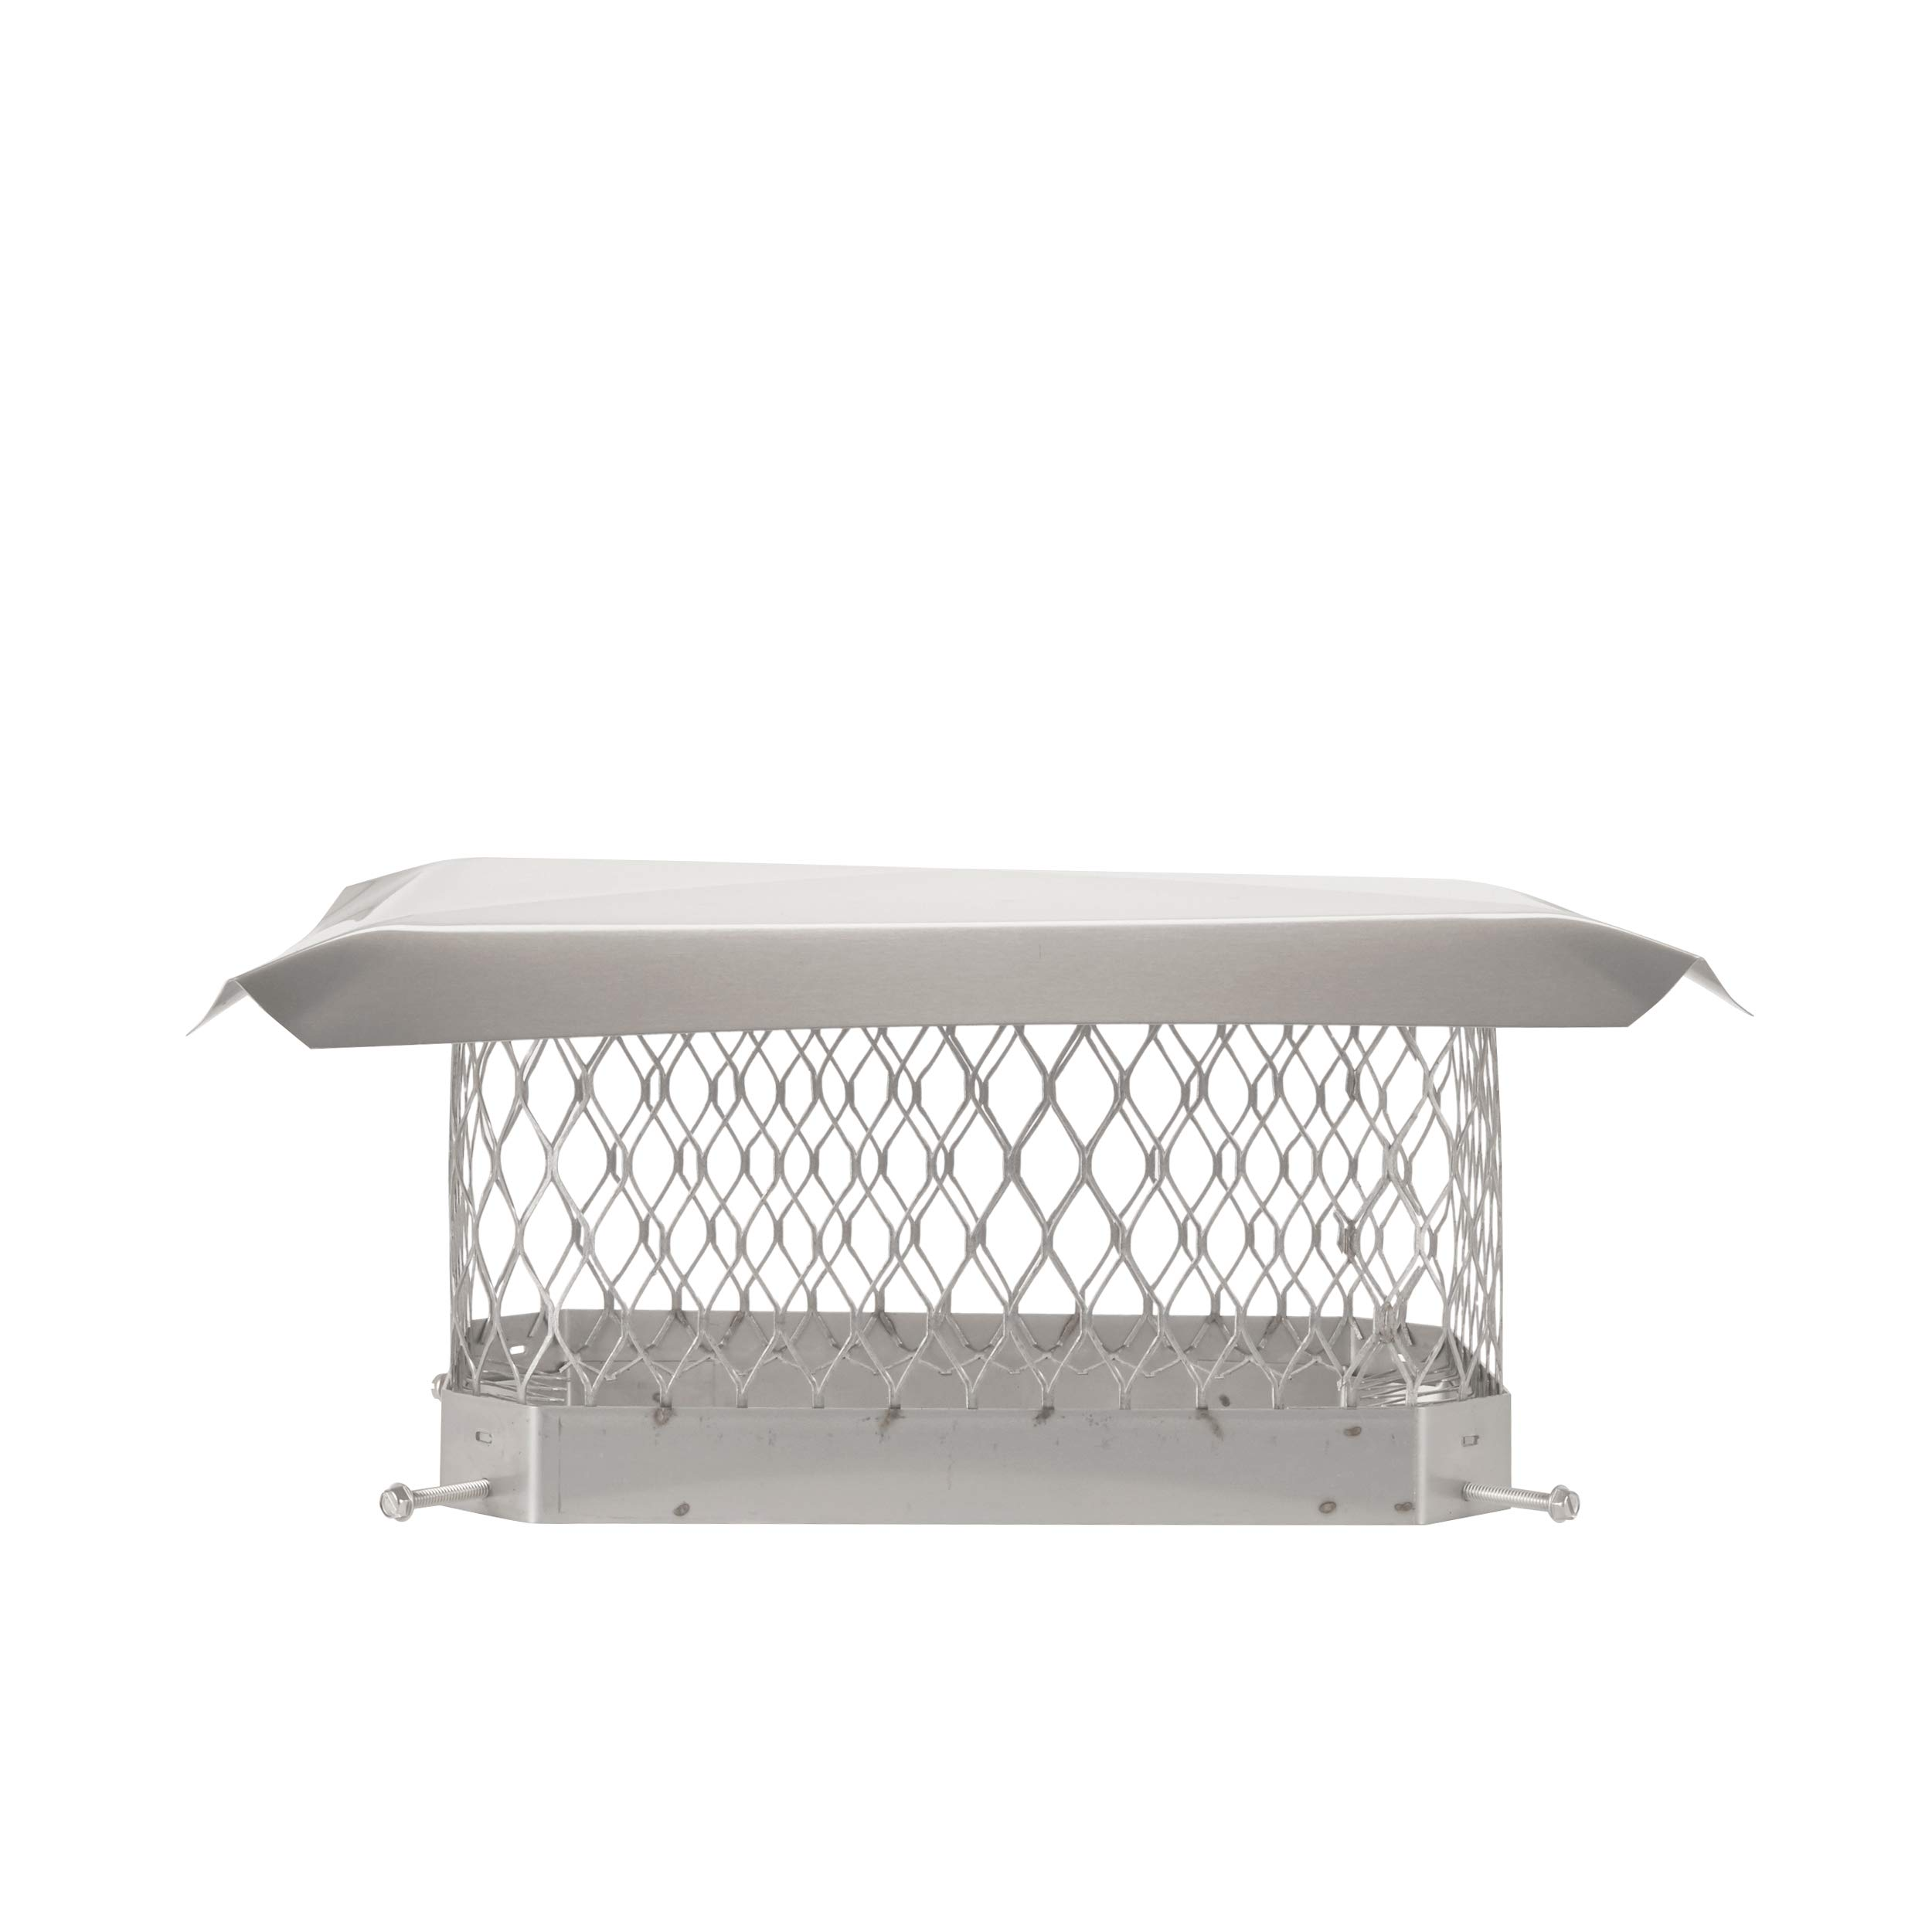 13x18 Shelter Pro SPSS1318 Stainless Steel Chimney Cap-Fits Outside Tile Dimensions